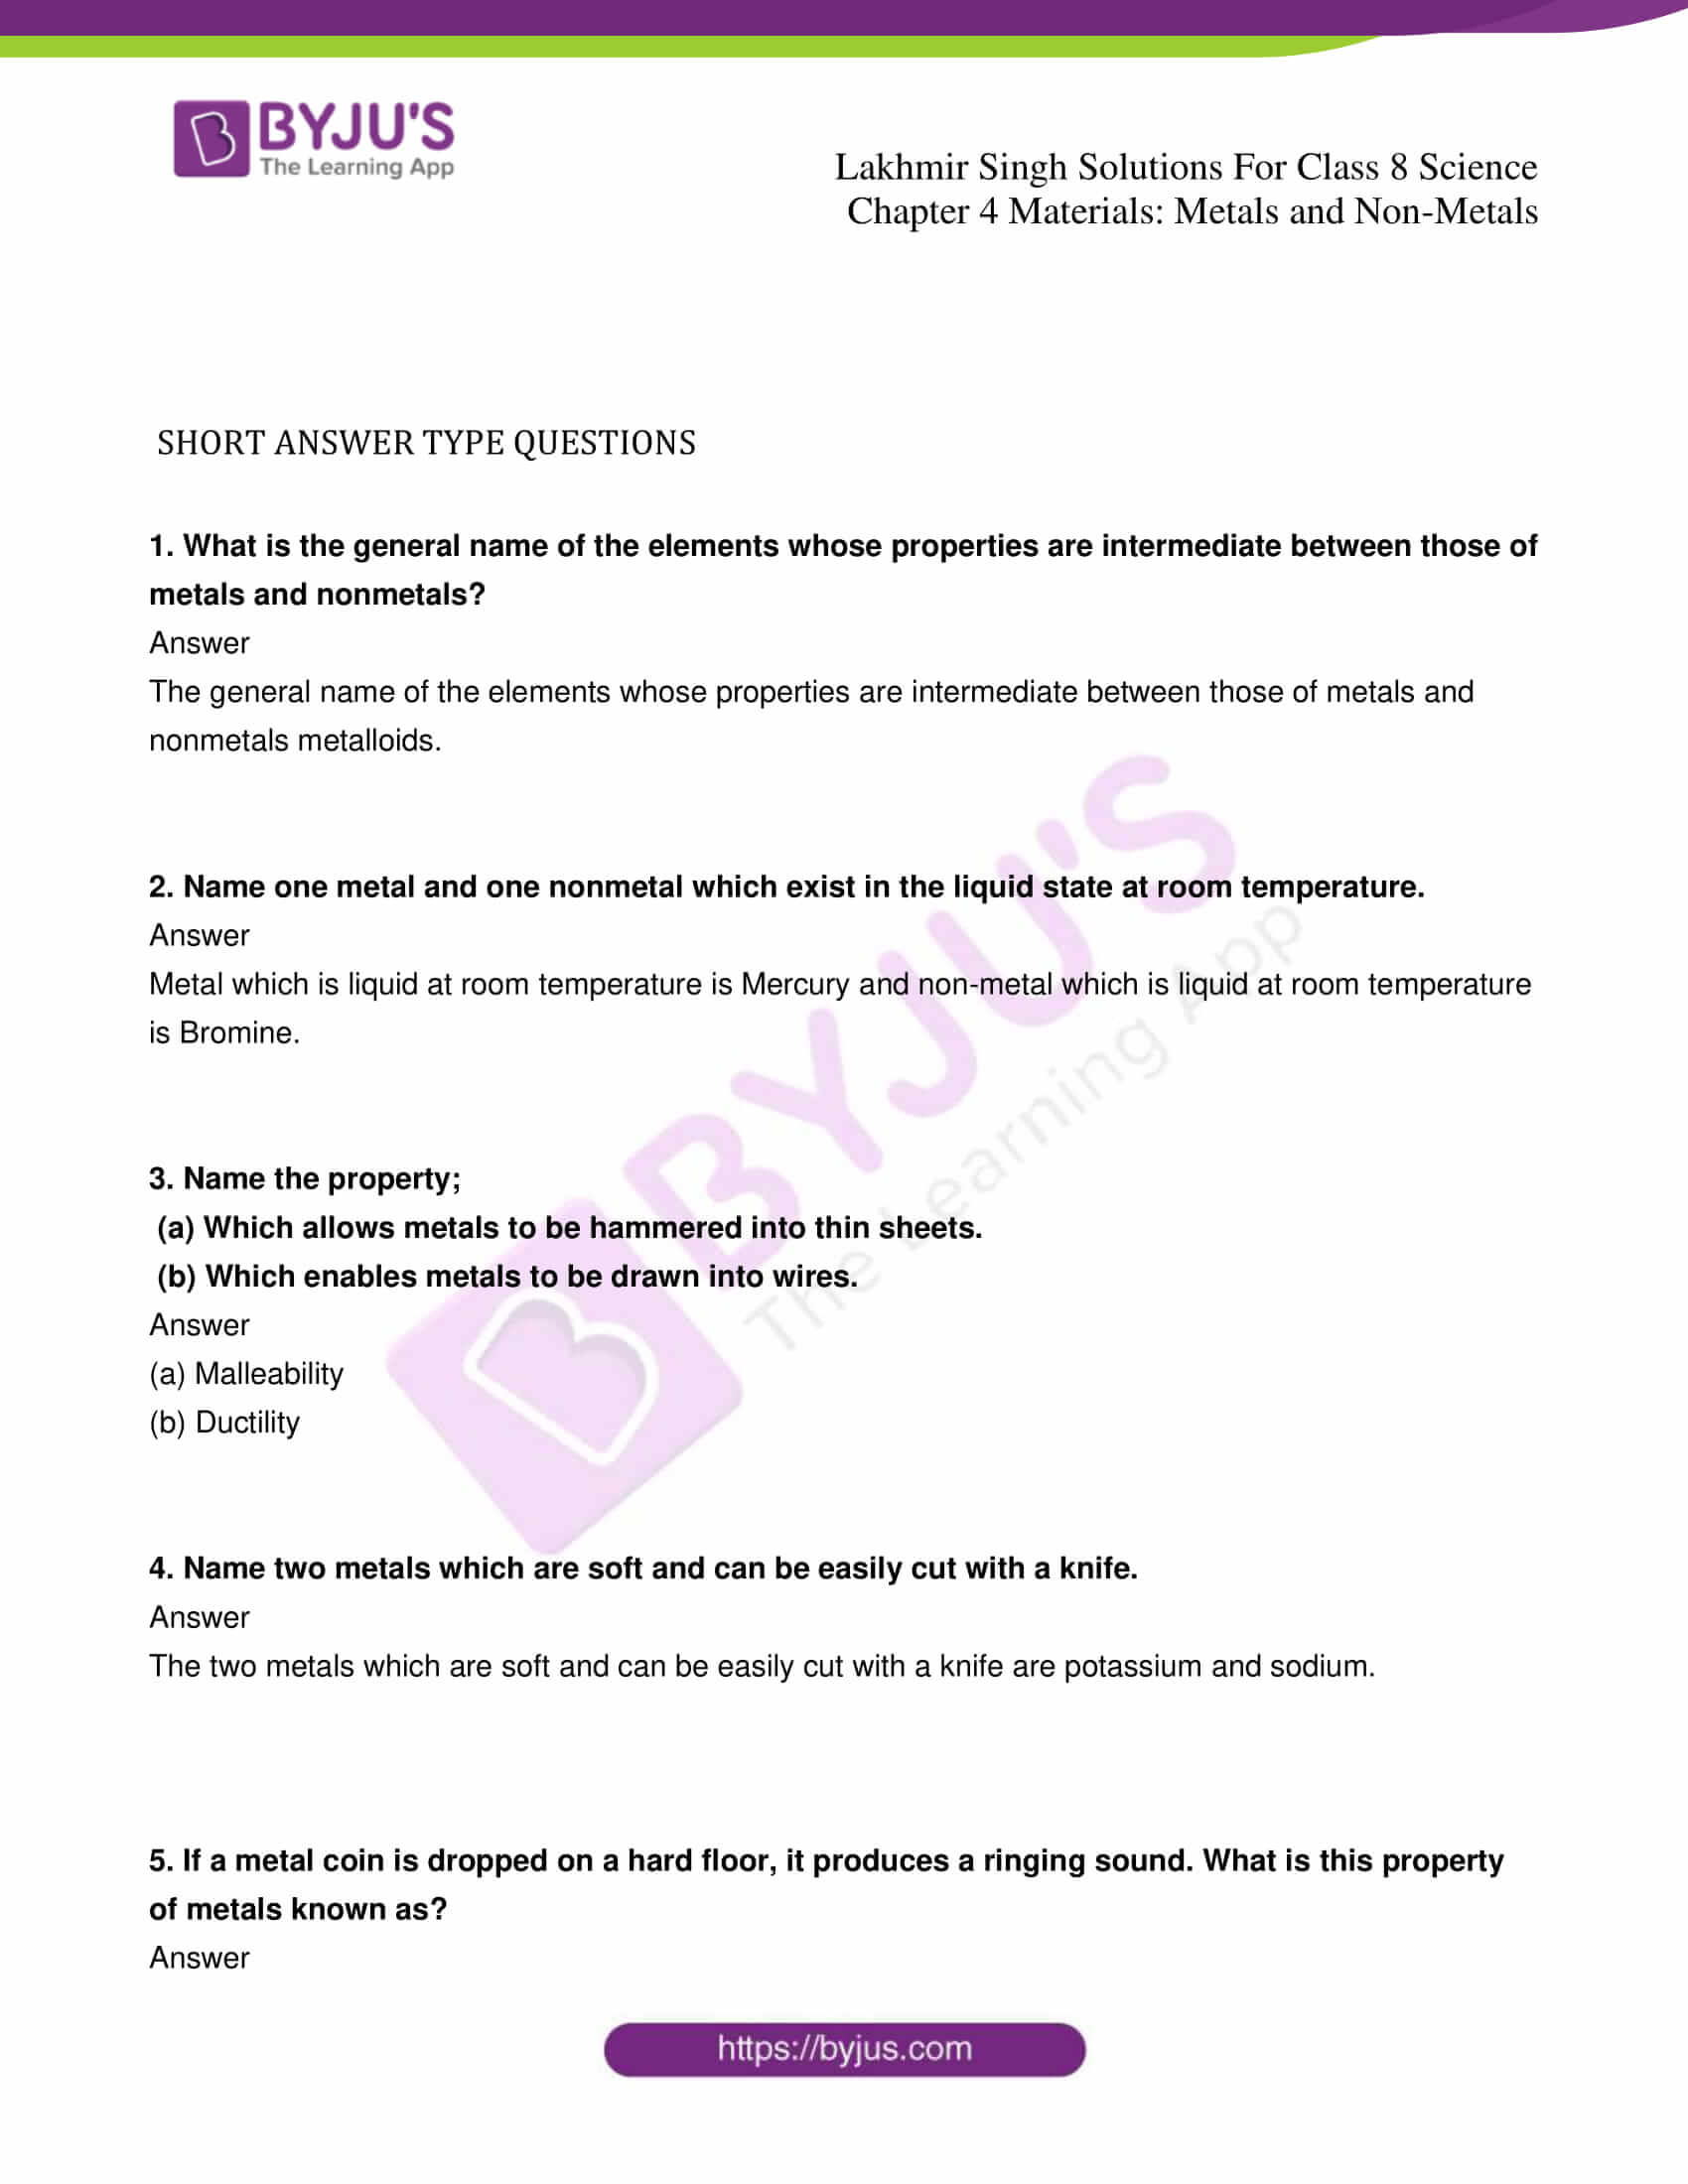 lakhmir singh solutions for class 8 science chapter 4 01